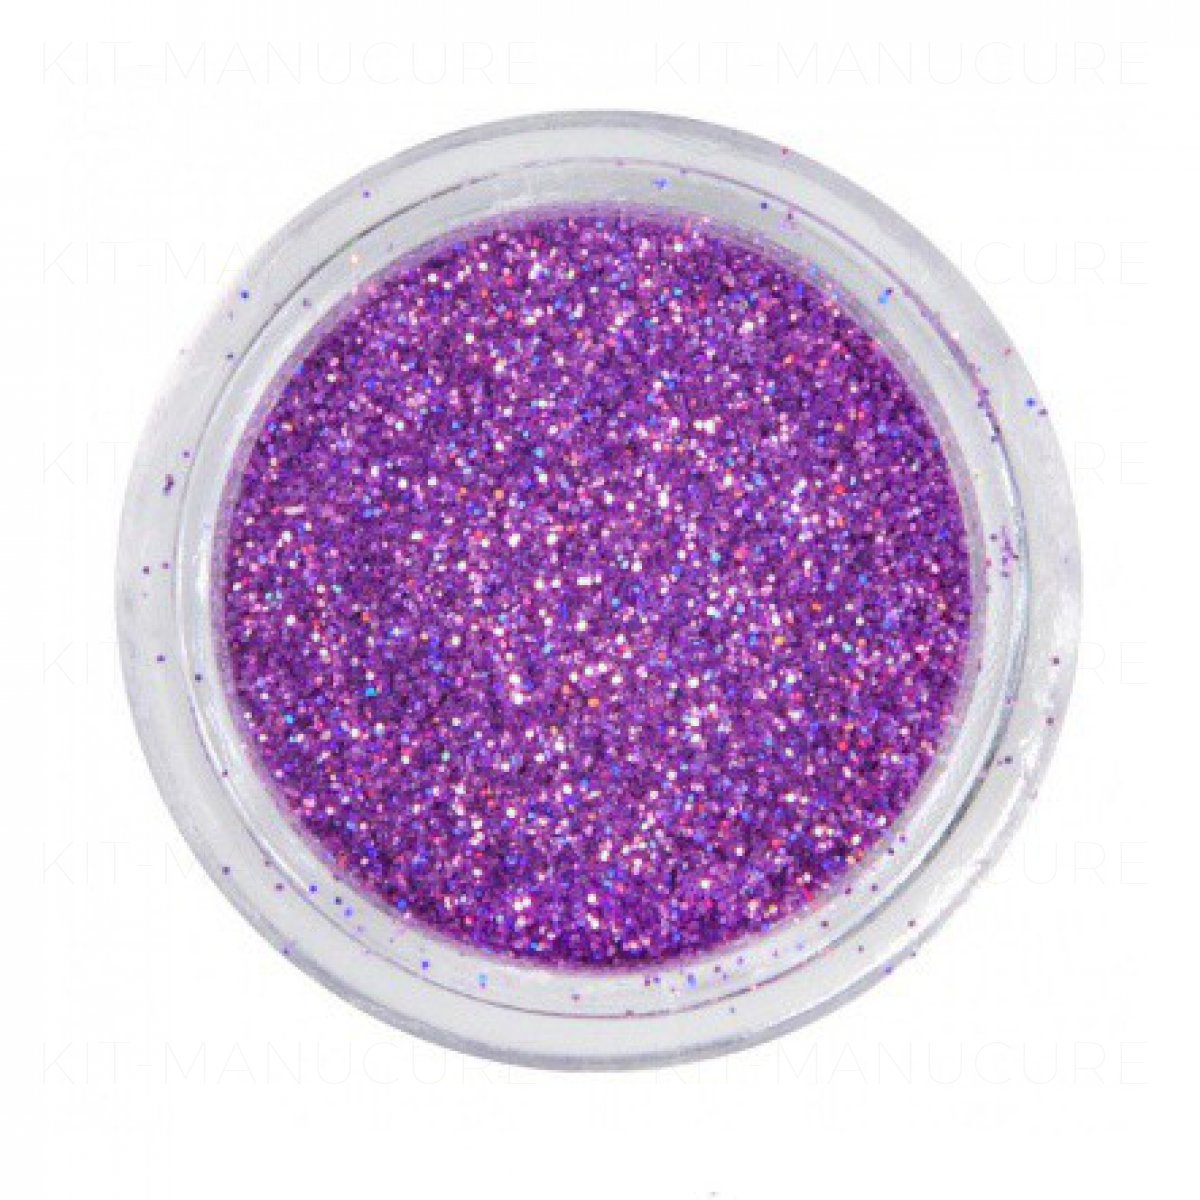 https://www.kit-manucure.com/1687-thickbox_default/paillettes-pour-ongles-paillettes-nail-art-violet.jpg